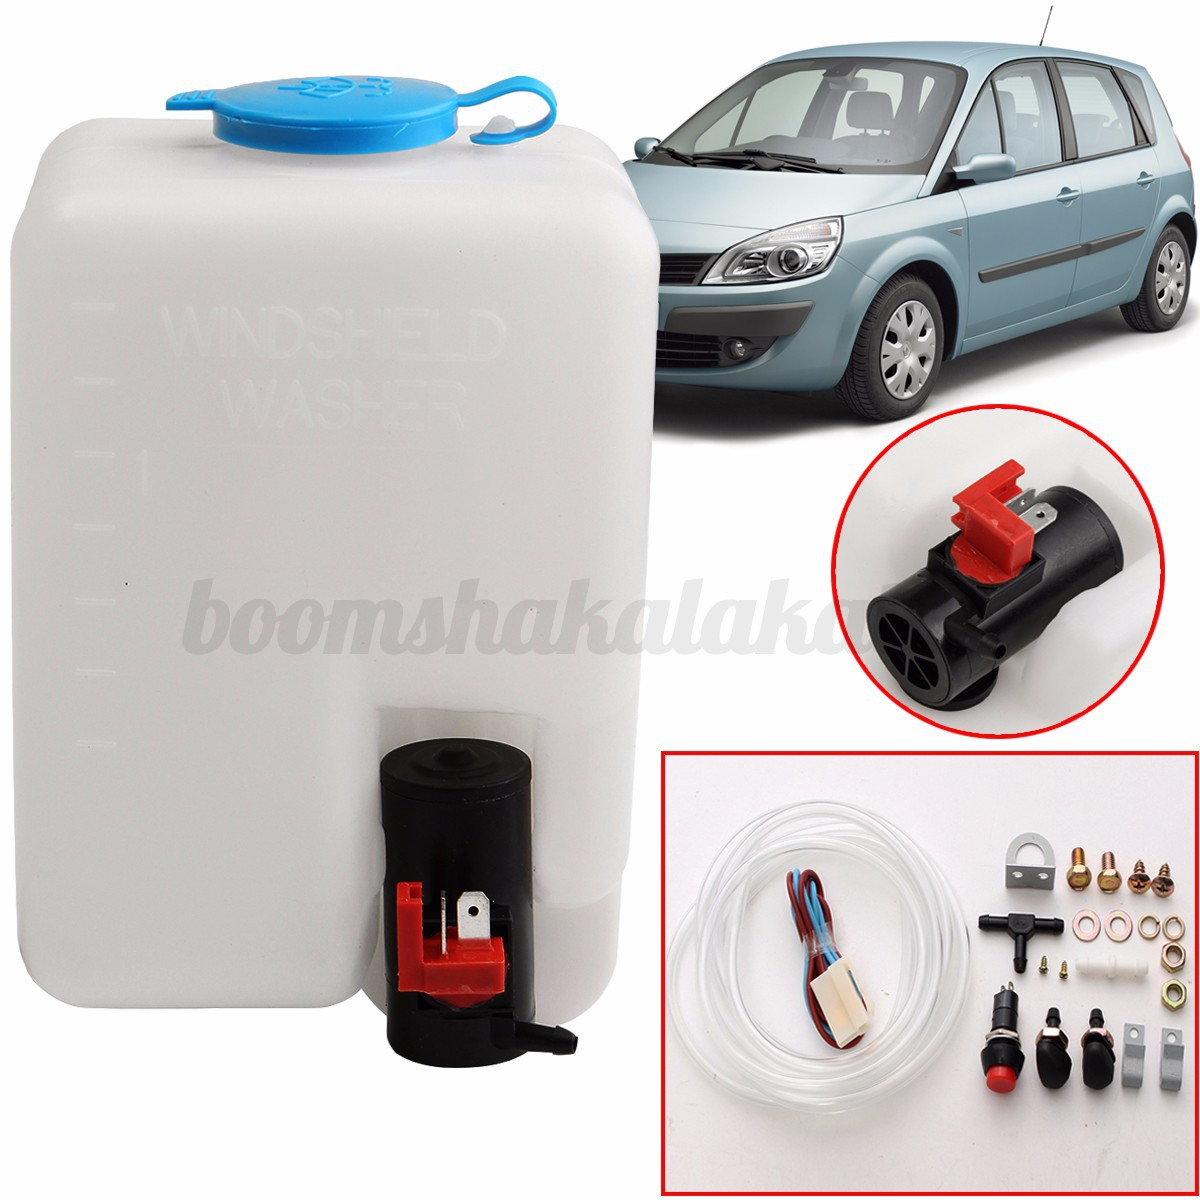 au 12v 1 8l universal car windshield washer reservoir pump bottle kit jet switch ebay. Black Bedroom Furniture Sets. Home Design Ideas